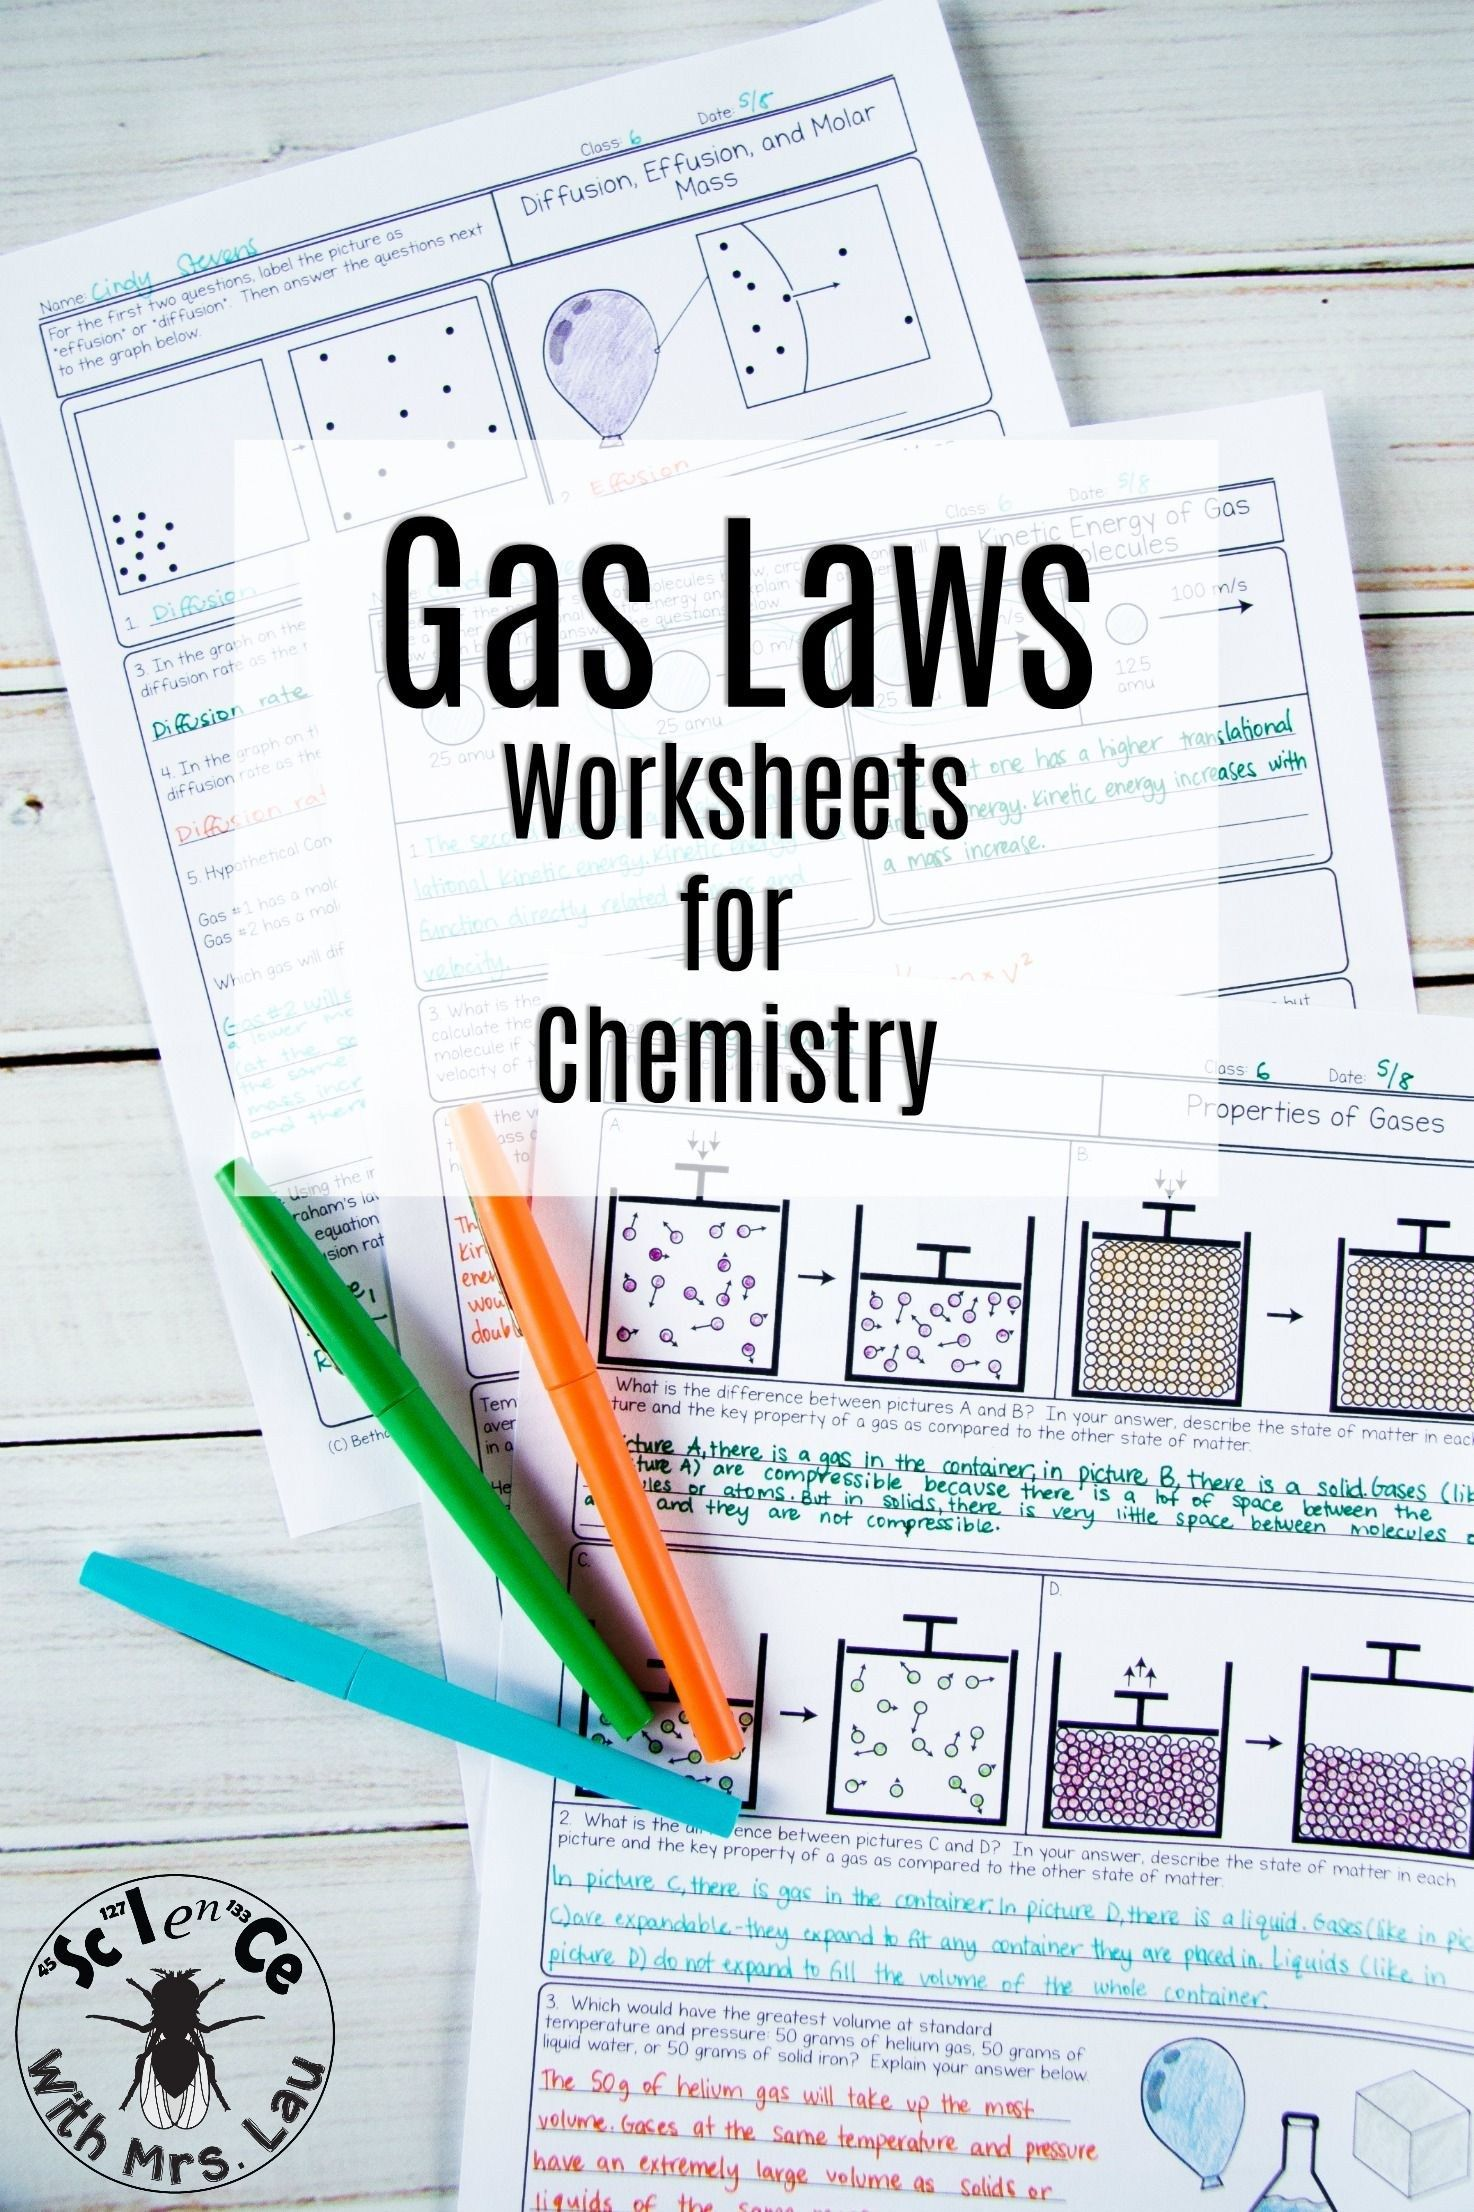 Basic Stoichiometry Worksheet Images Gas Laws Chemistry